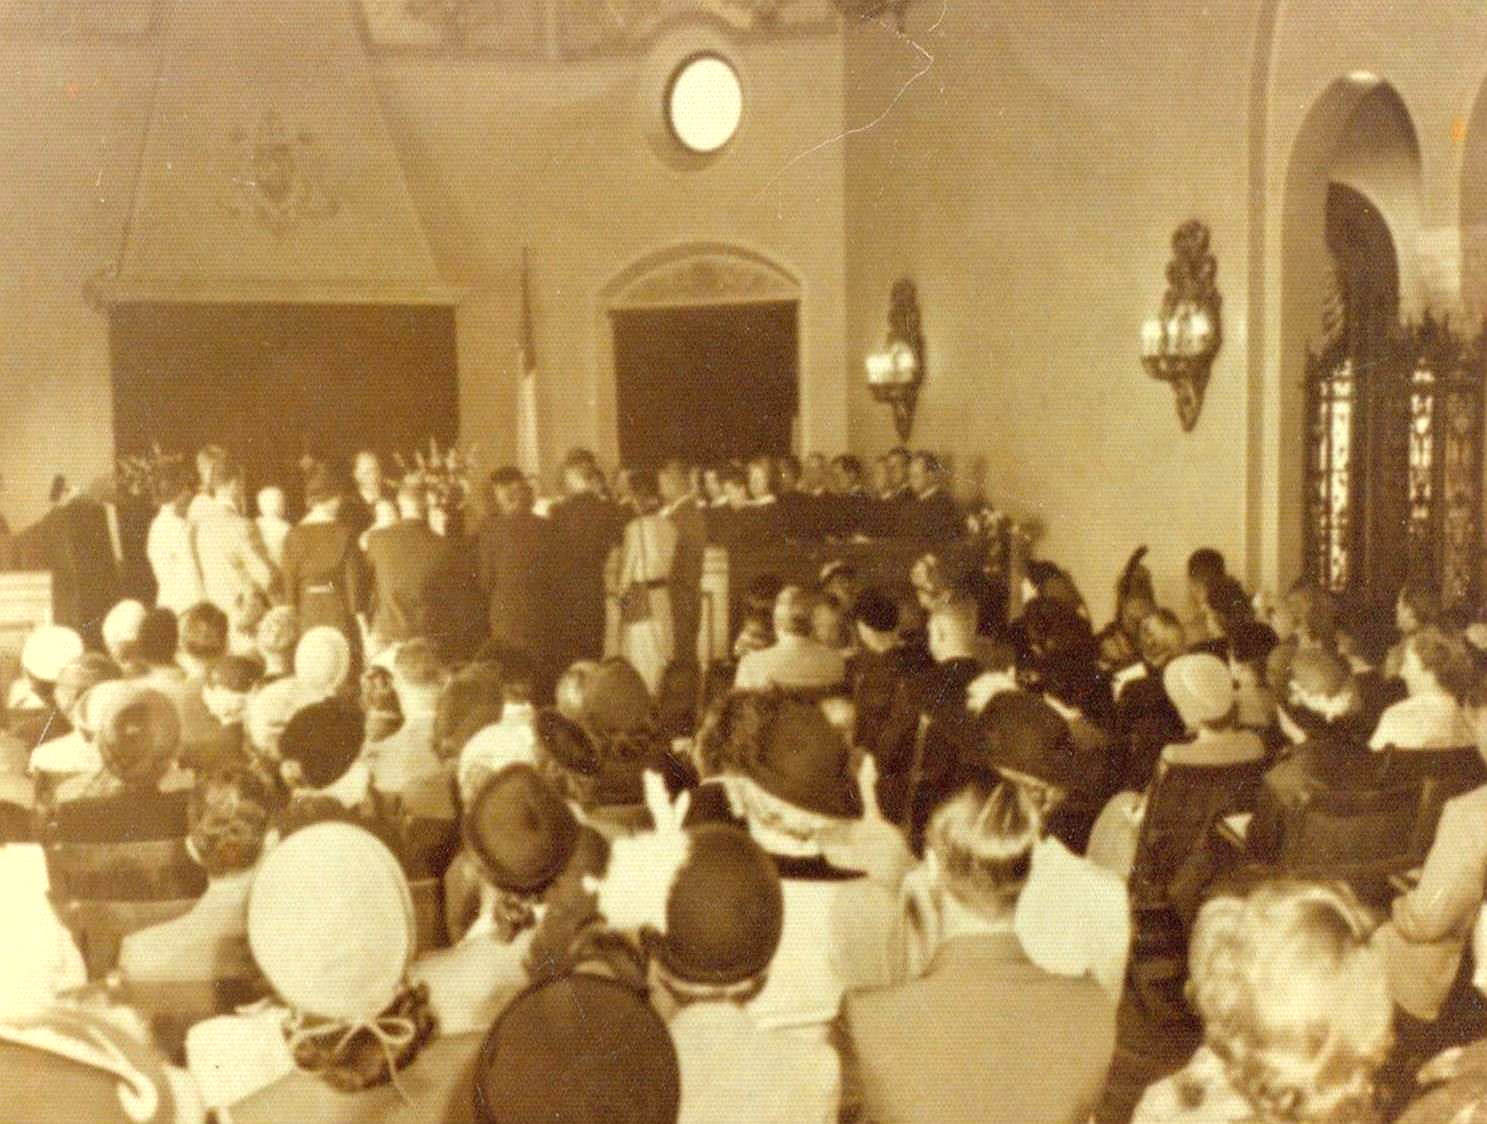 First service in the church October 5, 1952